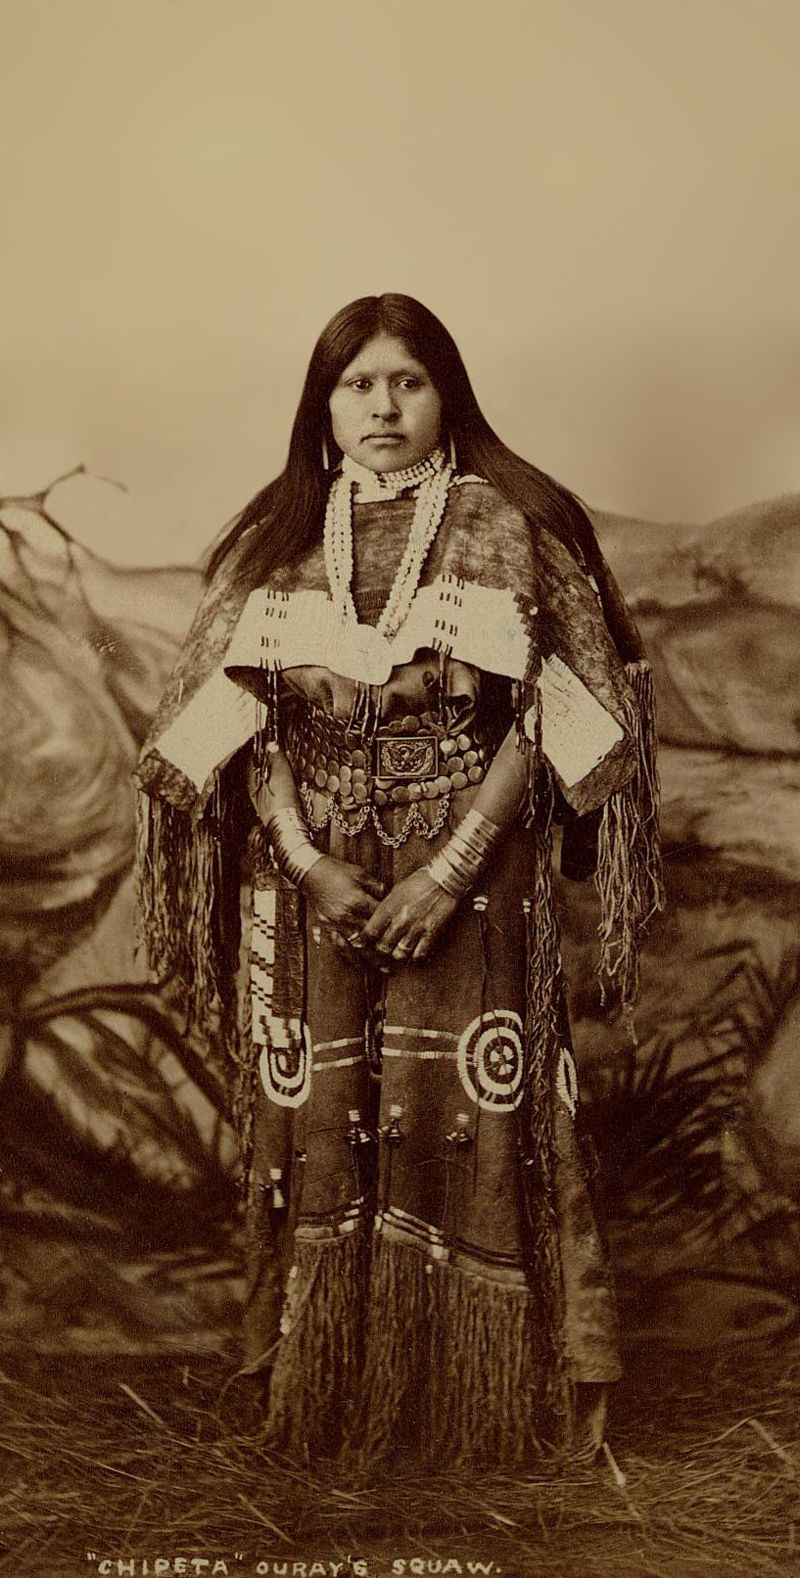 An old photograph of the Chipita aka Chipeta, Ouray's Squaw 1882.